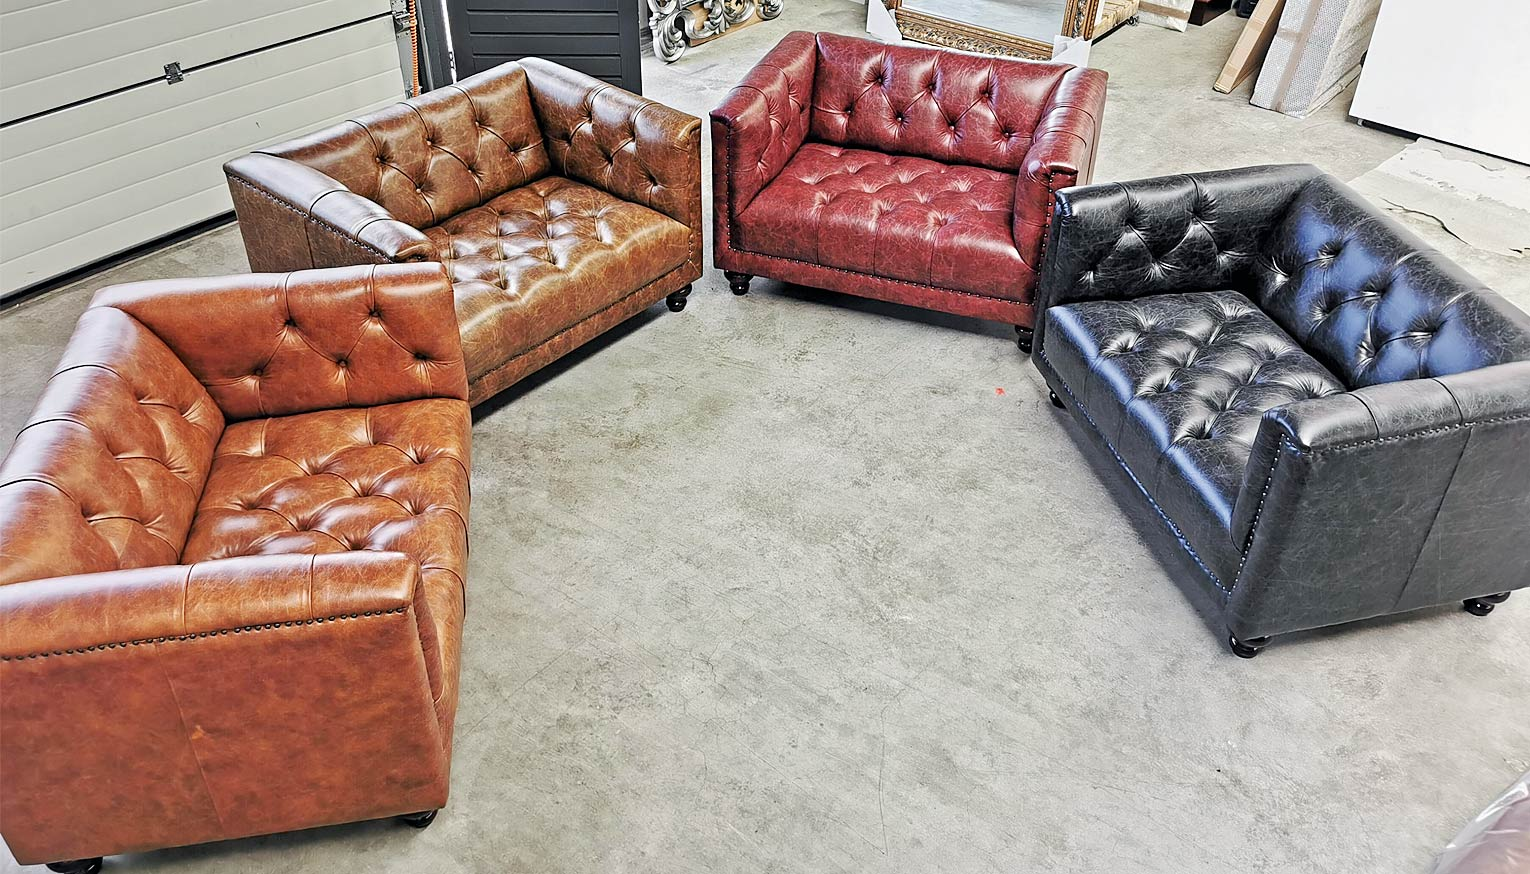 Our Parliament Love Seats in Vintage Leather